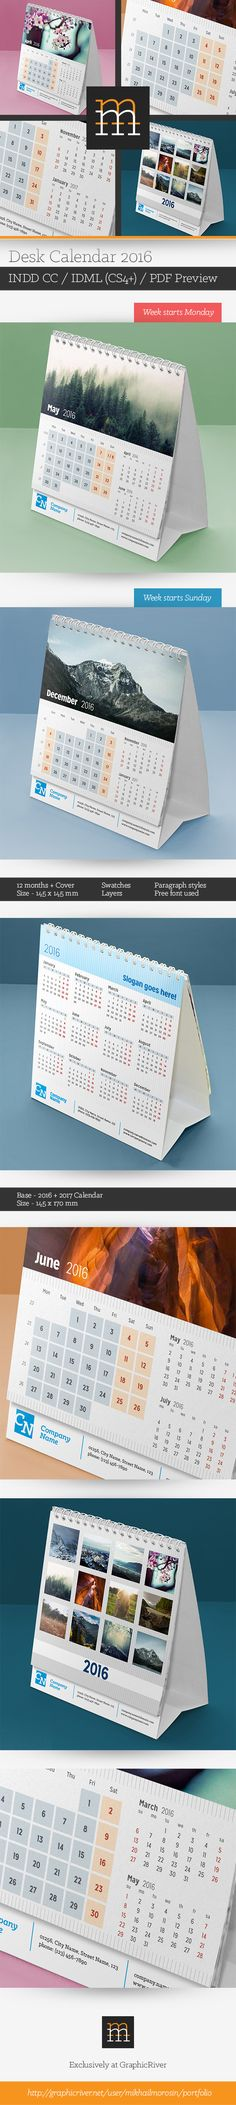 http://goo.gl/7NPoKjFeatures: Week starts Monday Week starts Sunday 12 pages + cover (size – 145×145 mm) Base – 2016 + 2017 Calendar (size – 145×170 mm) CMYK colors Print ready Fully editable Layers, swatches, paragraph stylesPreview images are…